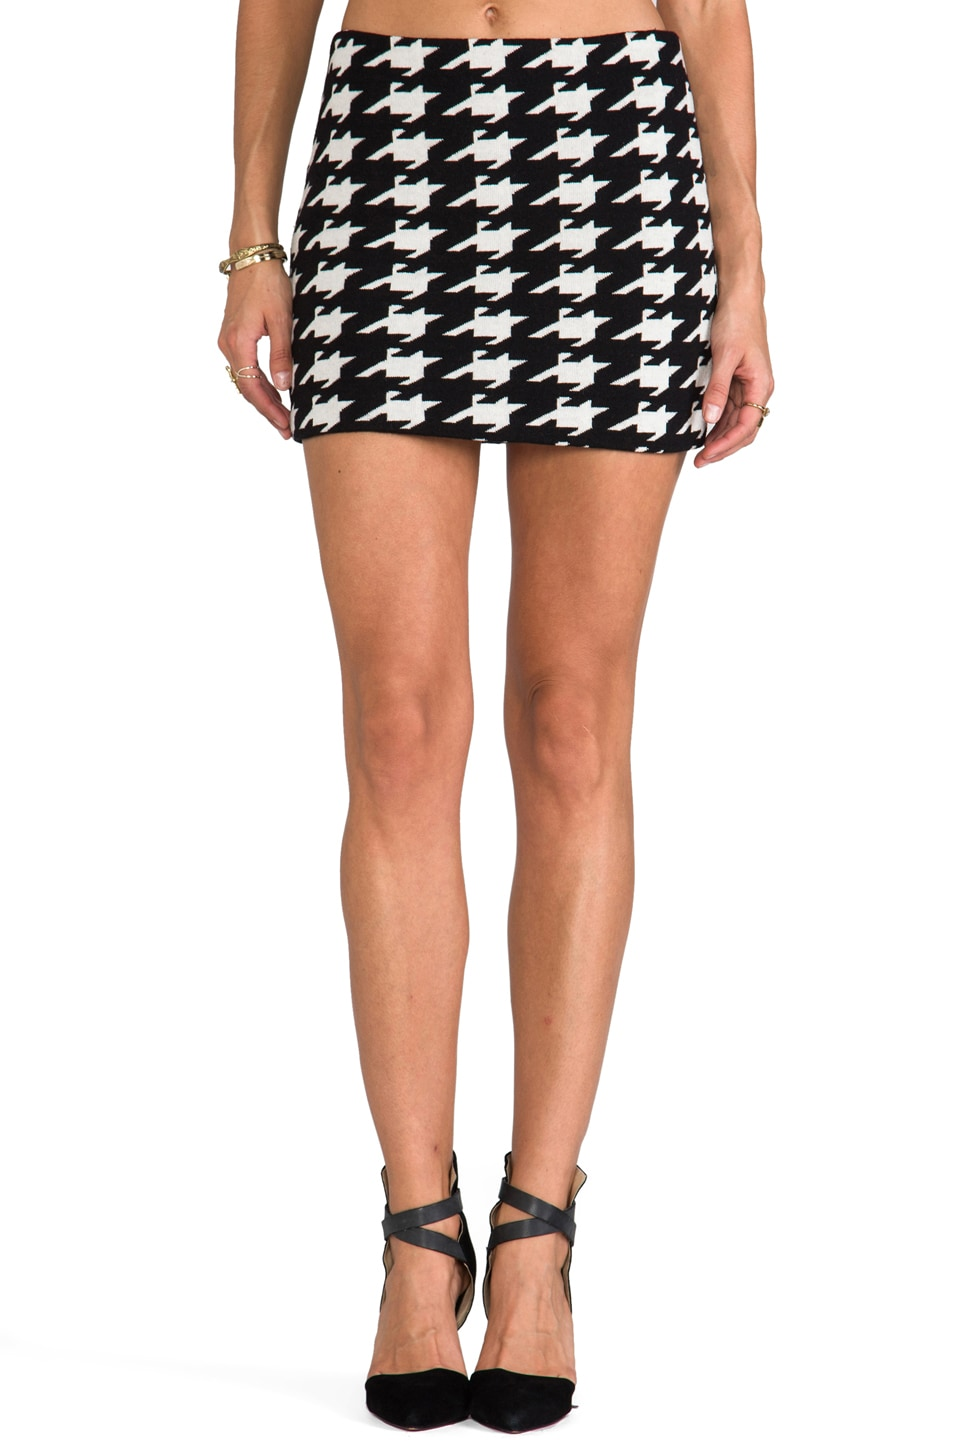 Alice + Olivia Elana Mini Skirt in Black/White